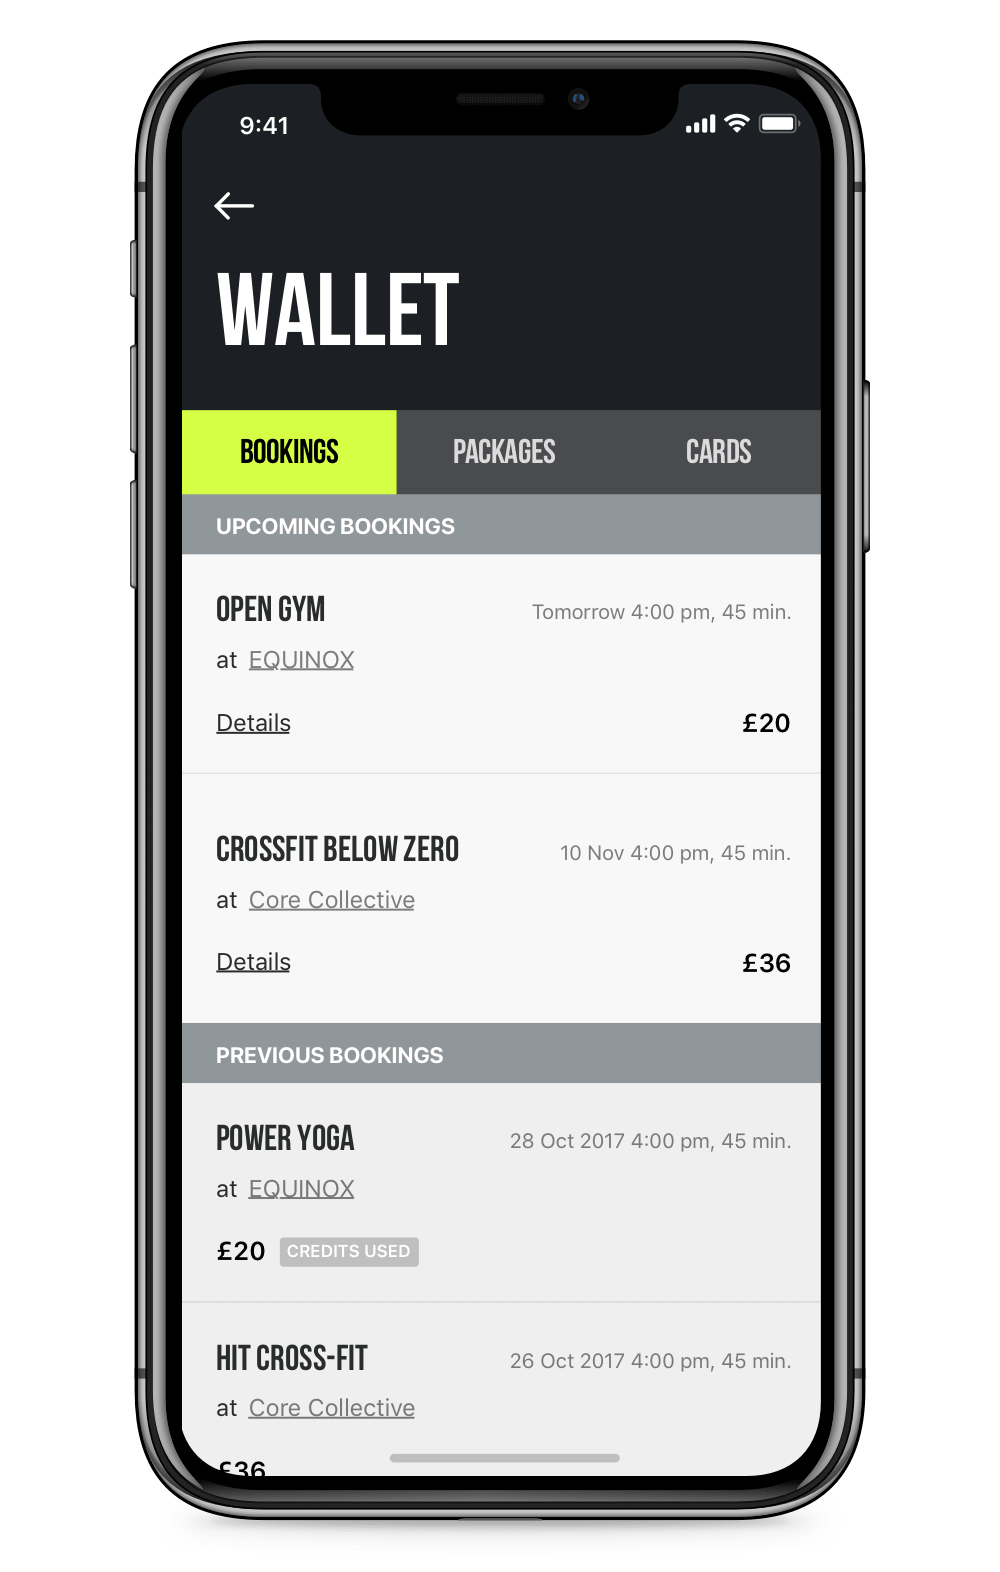 rig_12_uidesign_wallet@2x